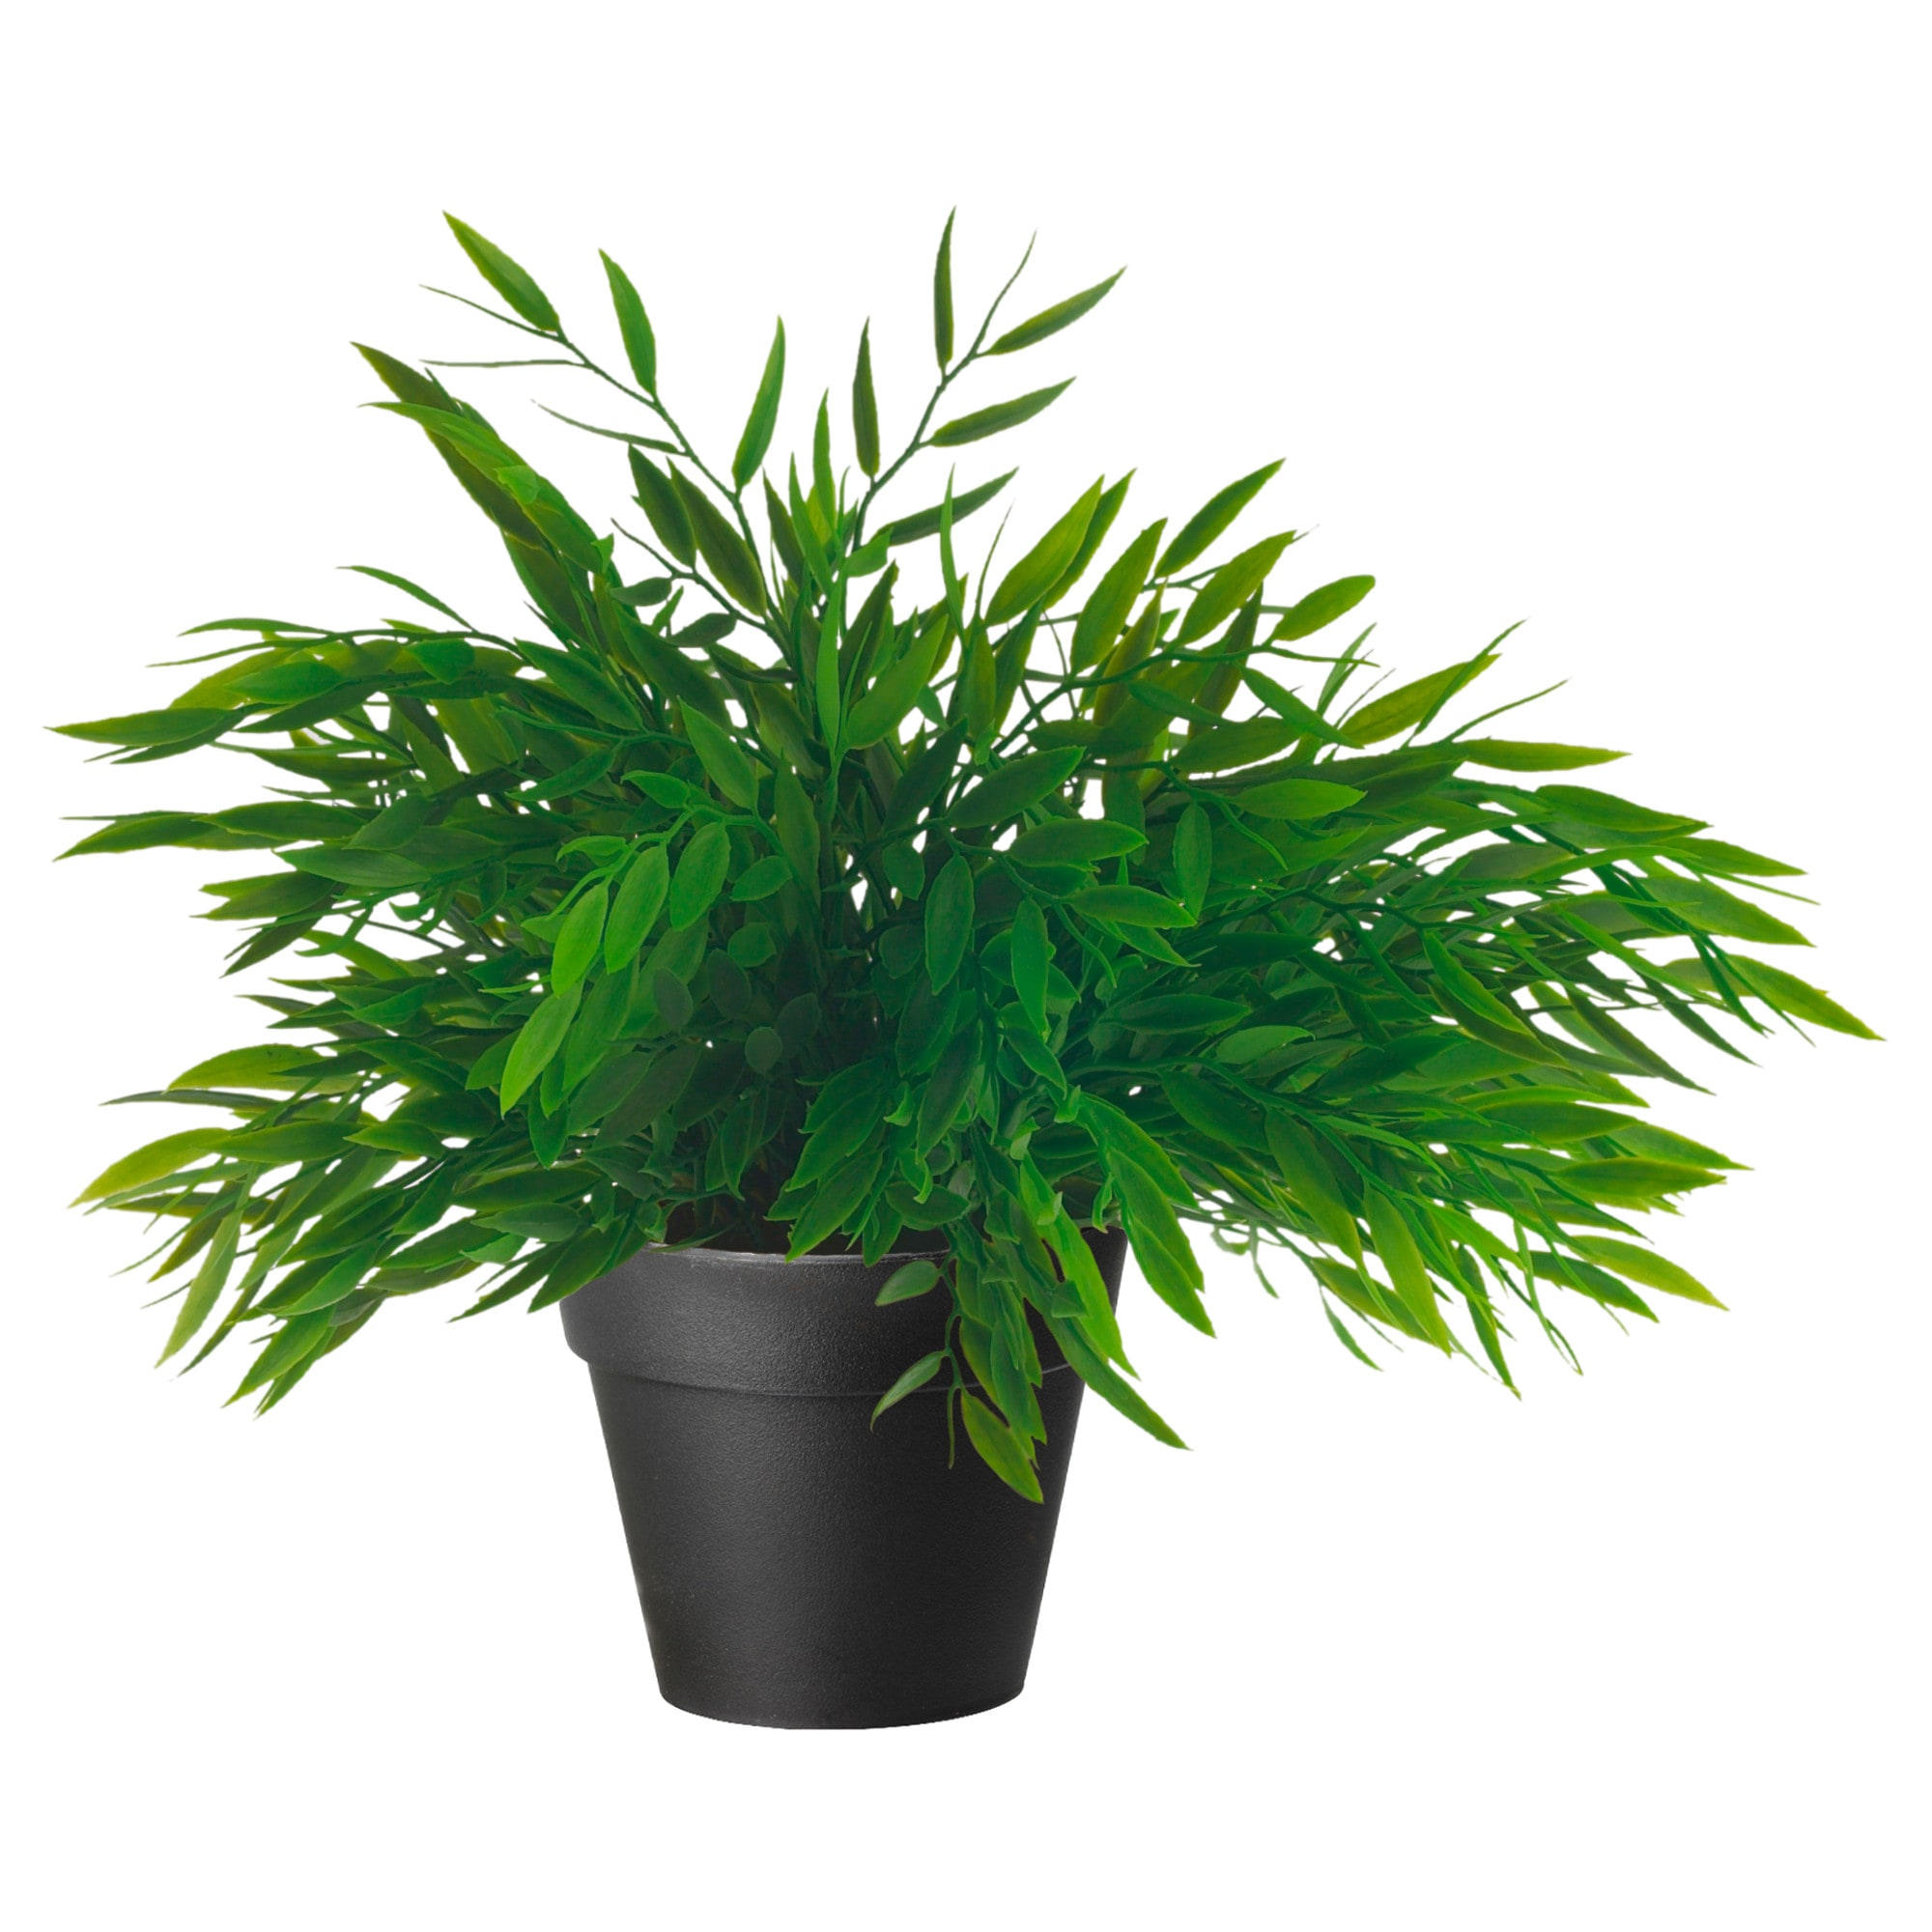 Attractive FEJKA Artificial Potted Plant   IKEA